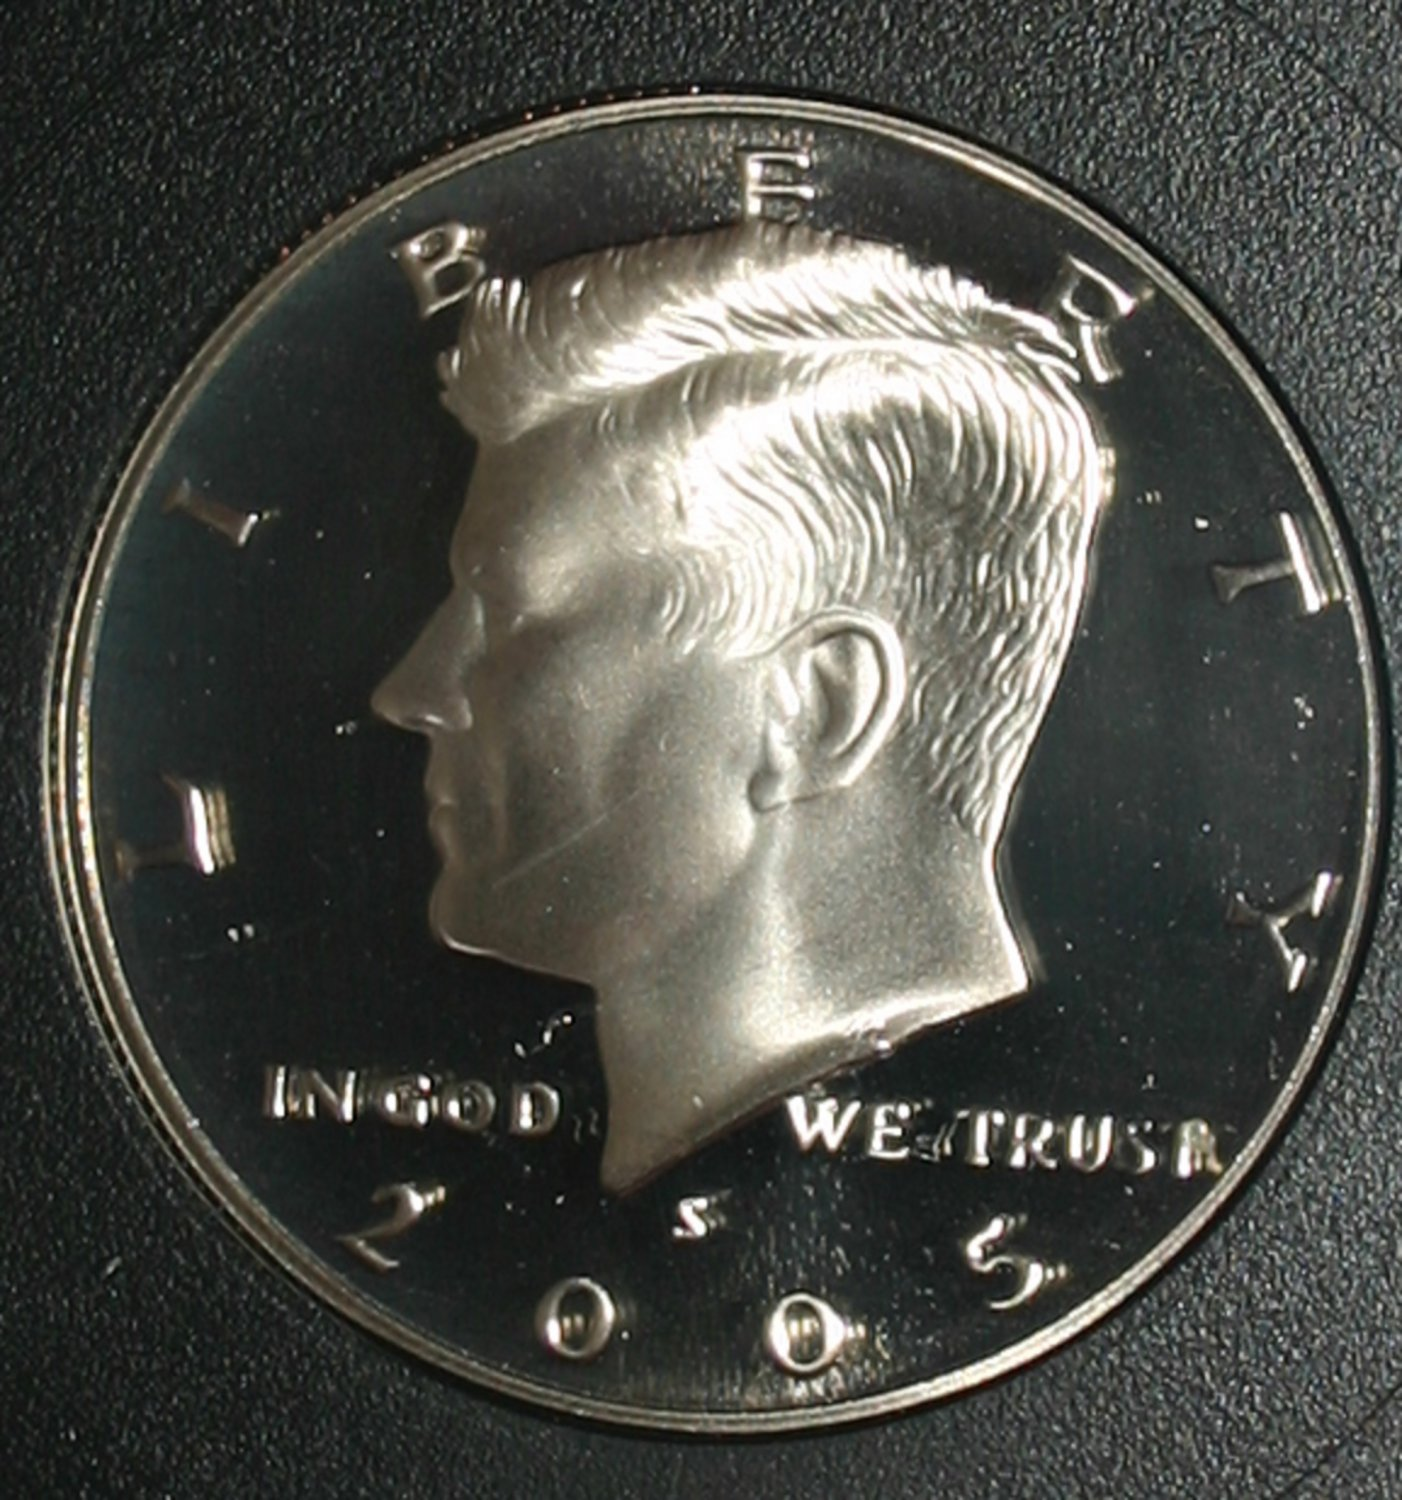 USA 2005-S Kennedy 50c Half Dollar Liberty Cameo Full Strike INB Certified Coin